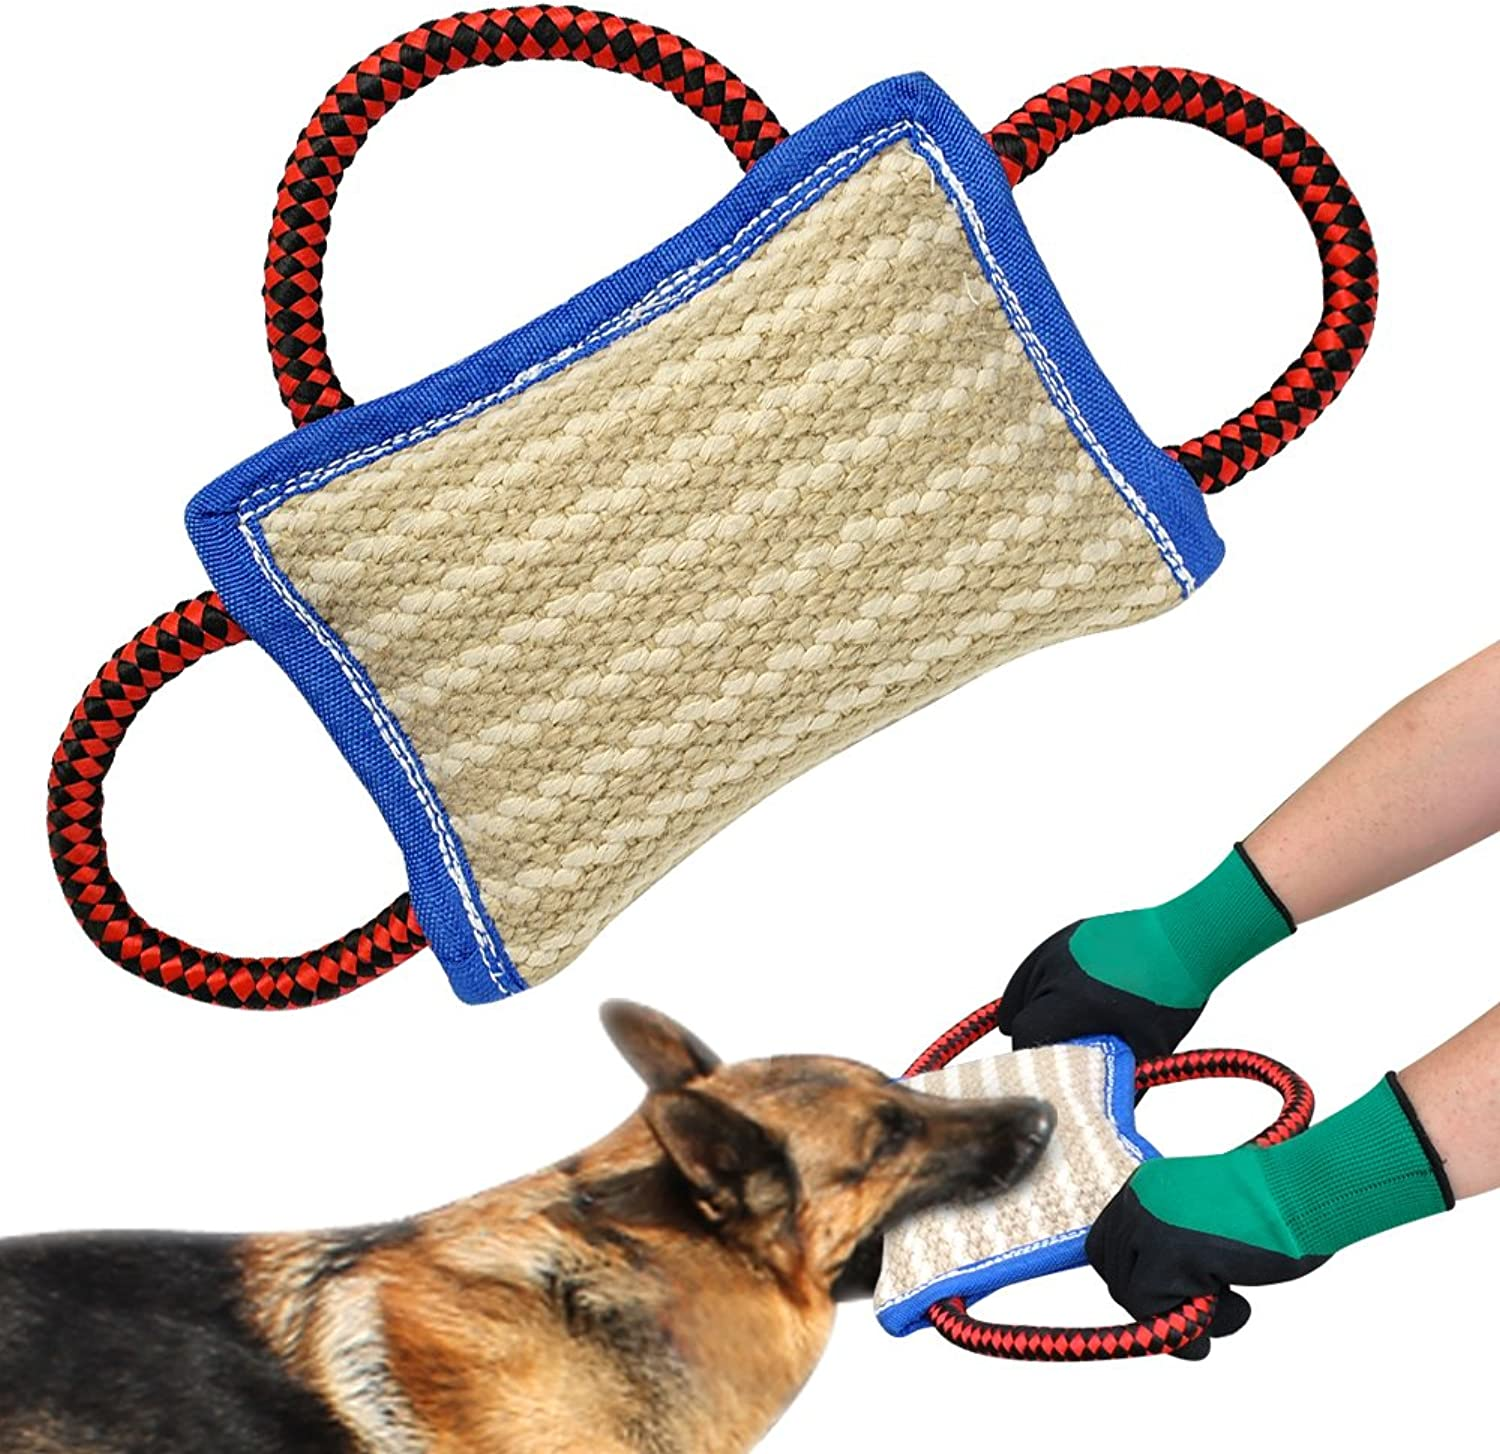 PET ARTIST 3 Handles Jute Bite Pillow 9.5  6.5 Linen Tug Toy for Young Dogs